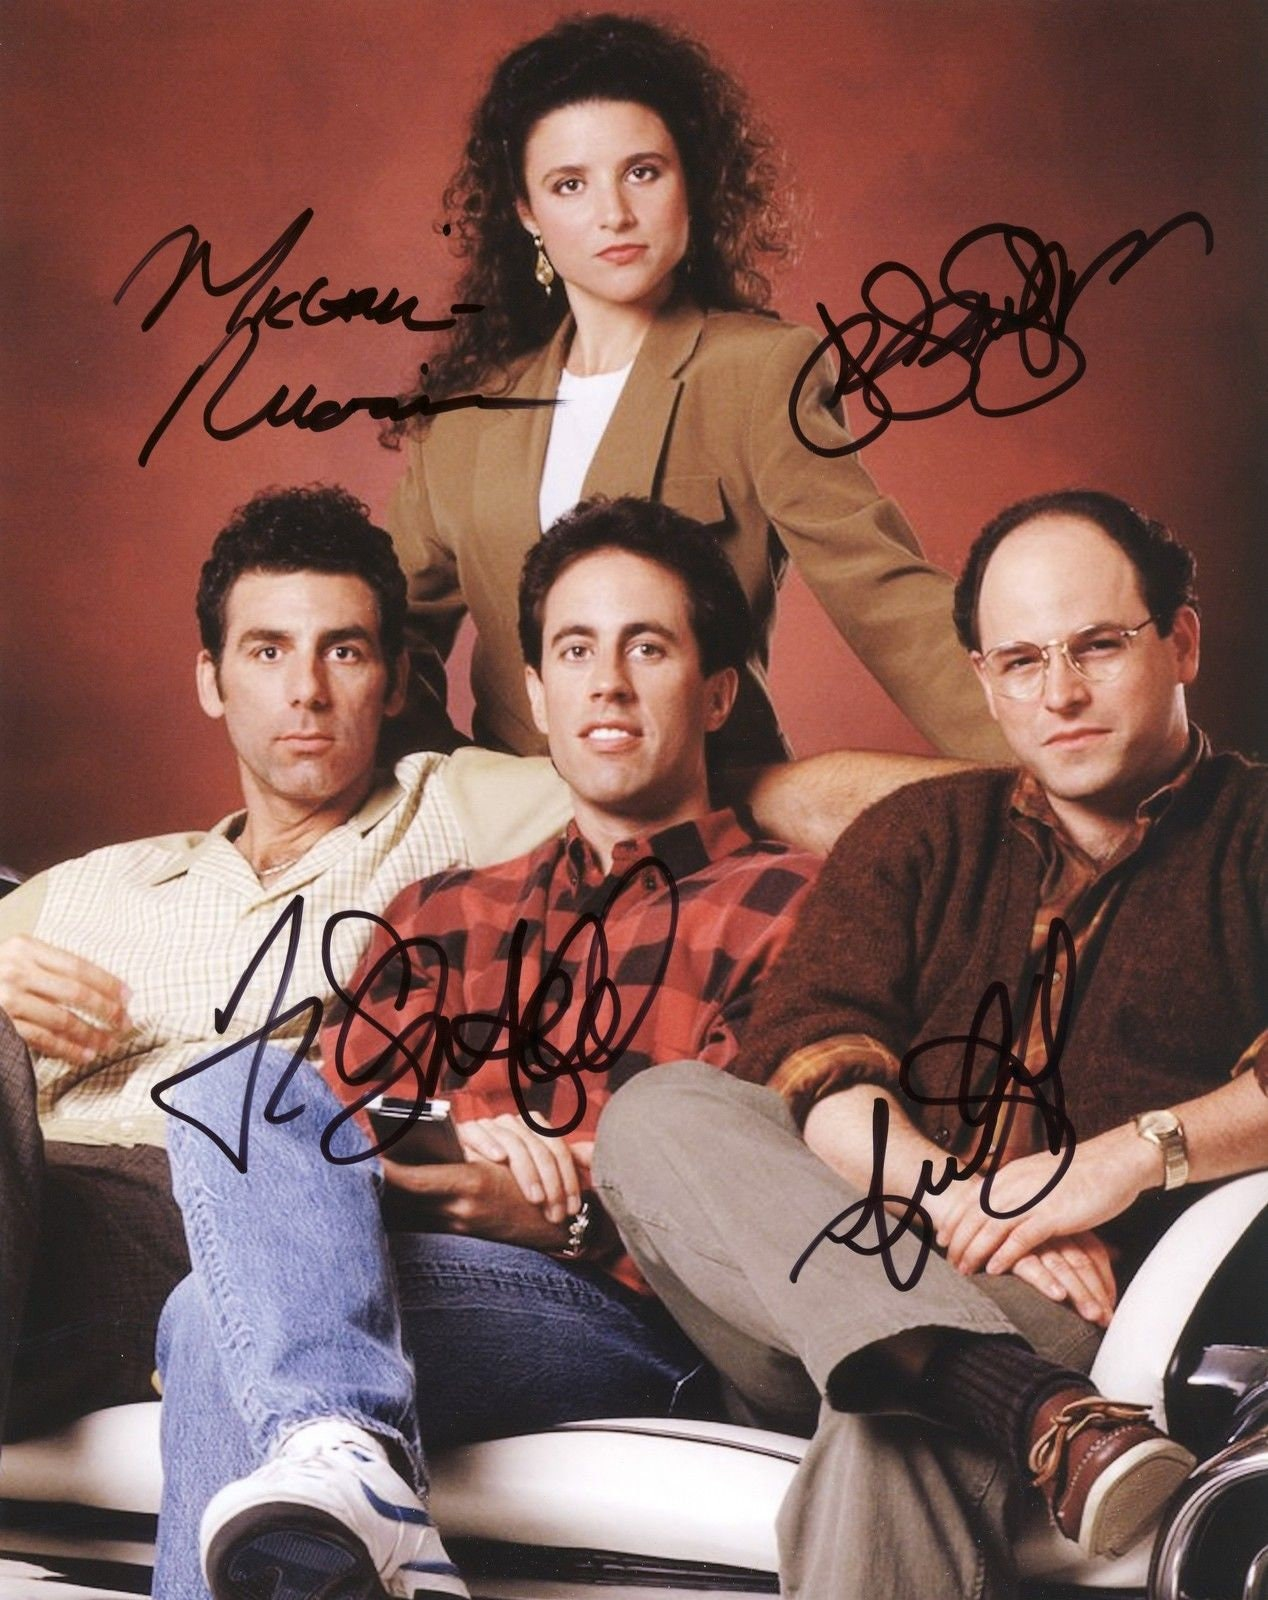 SEINFELD CAST signed autographed 8x10 PROFESSIONAL photo Pre   Etsy